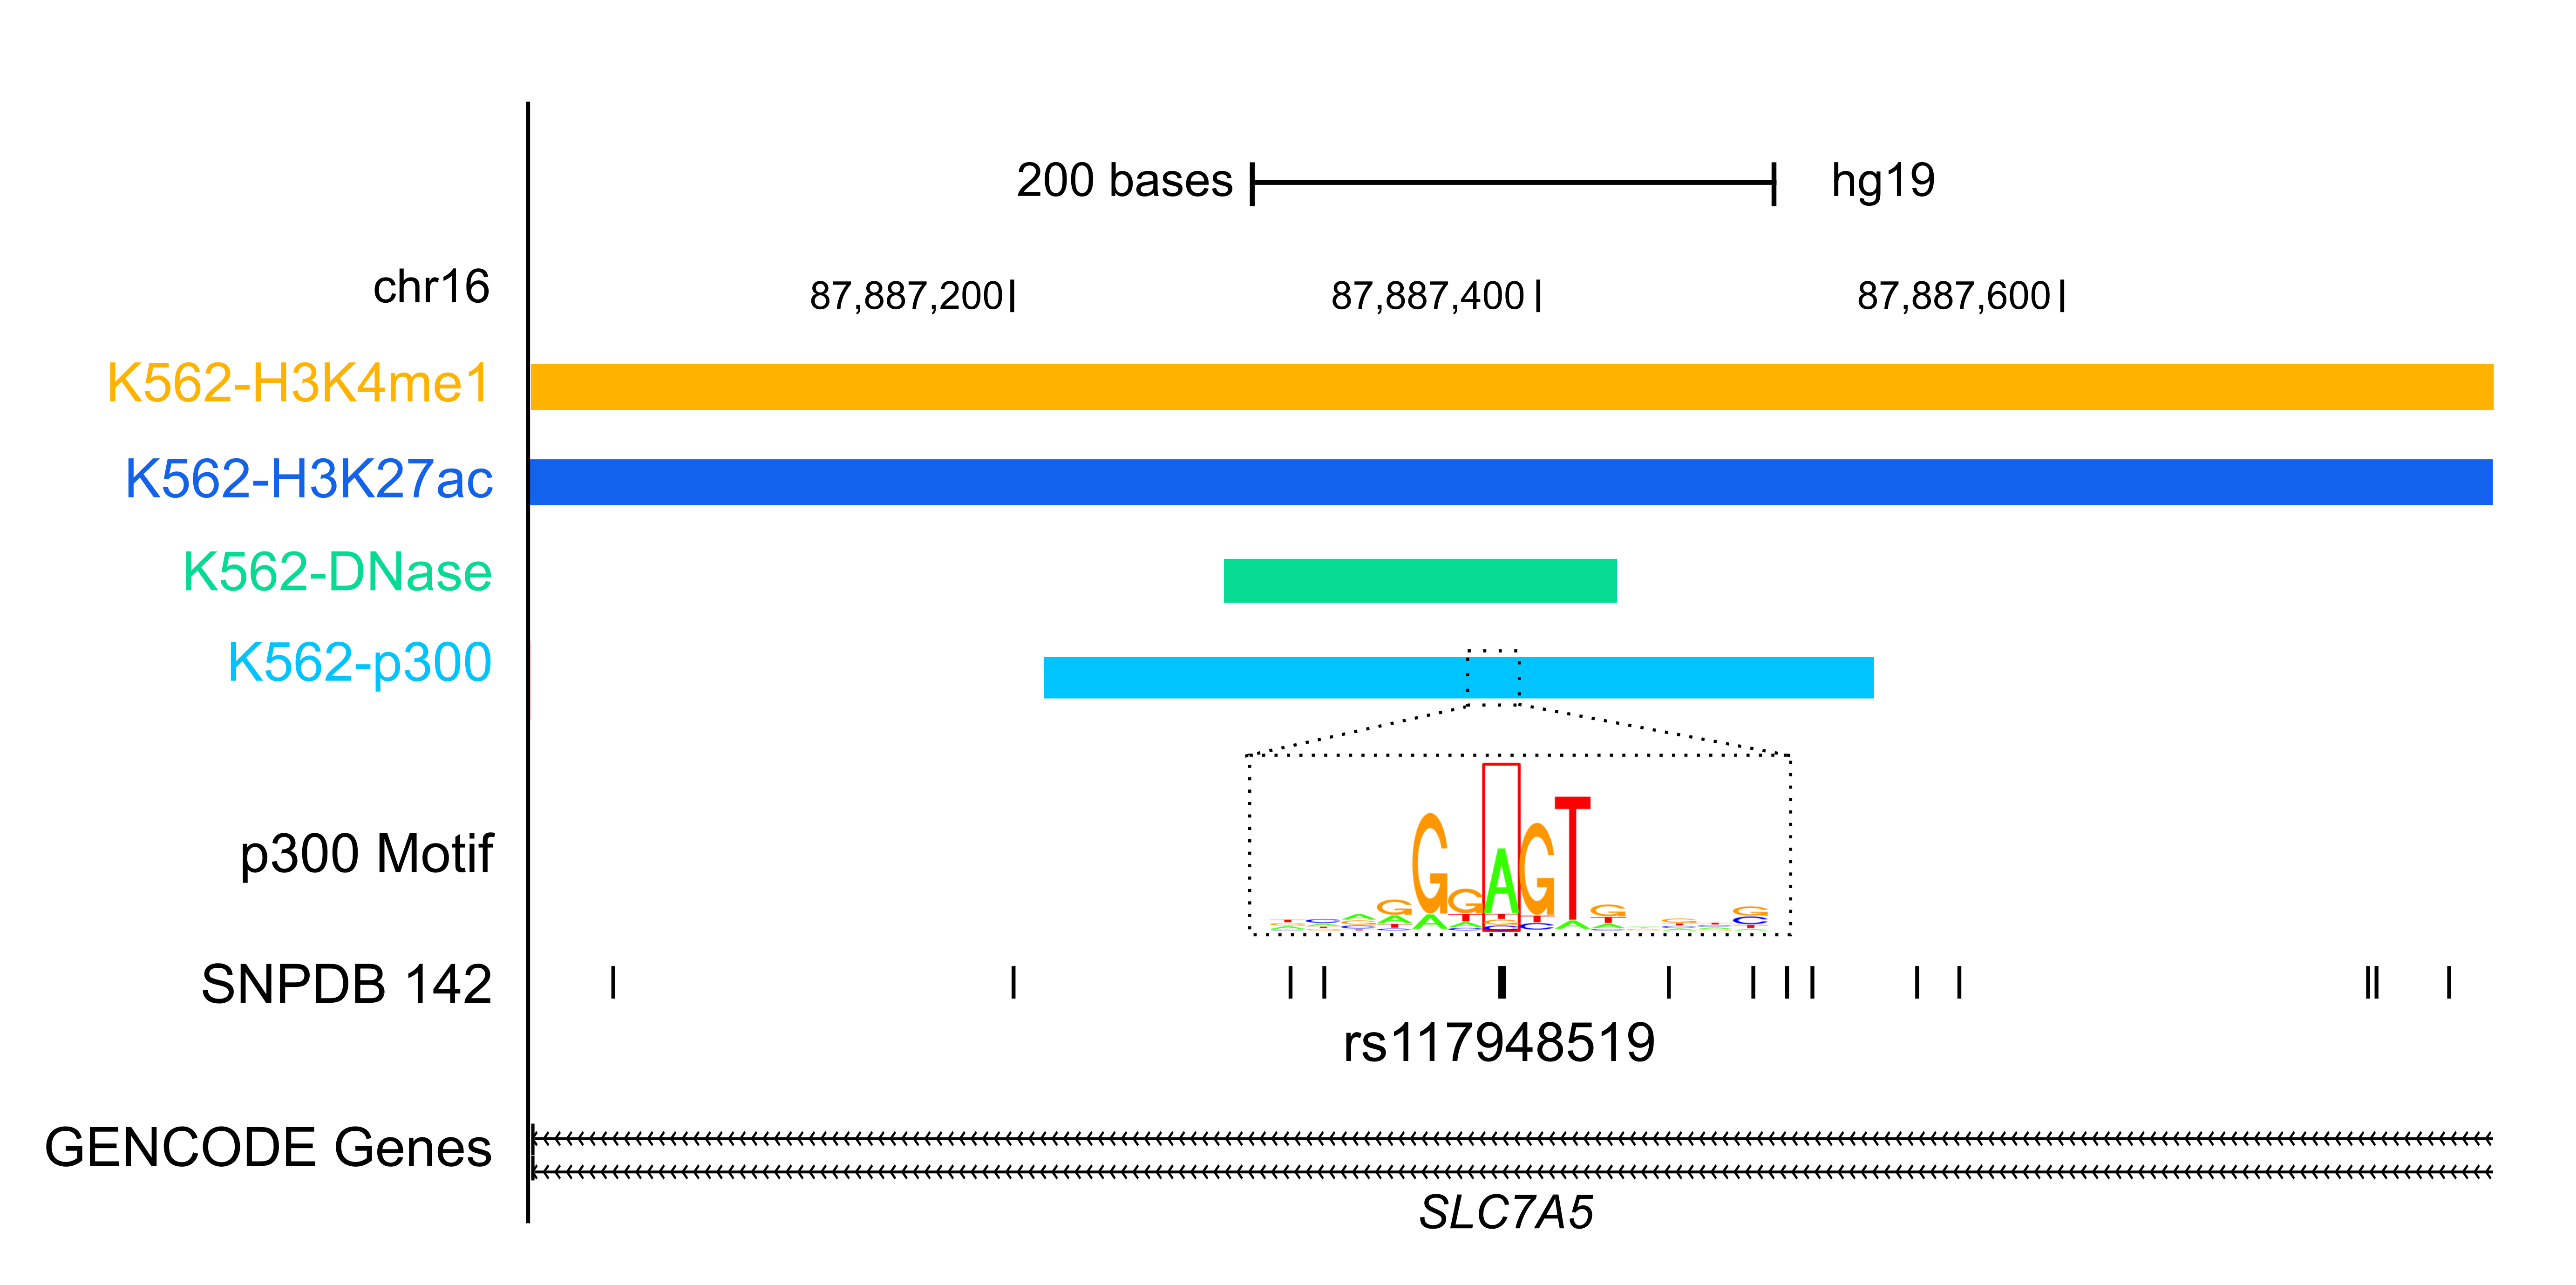 Funseq Is Another Encode Resource For Annotating Both Germline And Somatic  Variants, Particularly In The Noncoding Regions Of Cancer Genomes